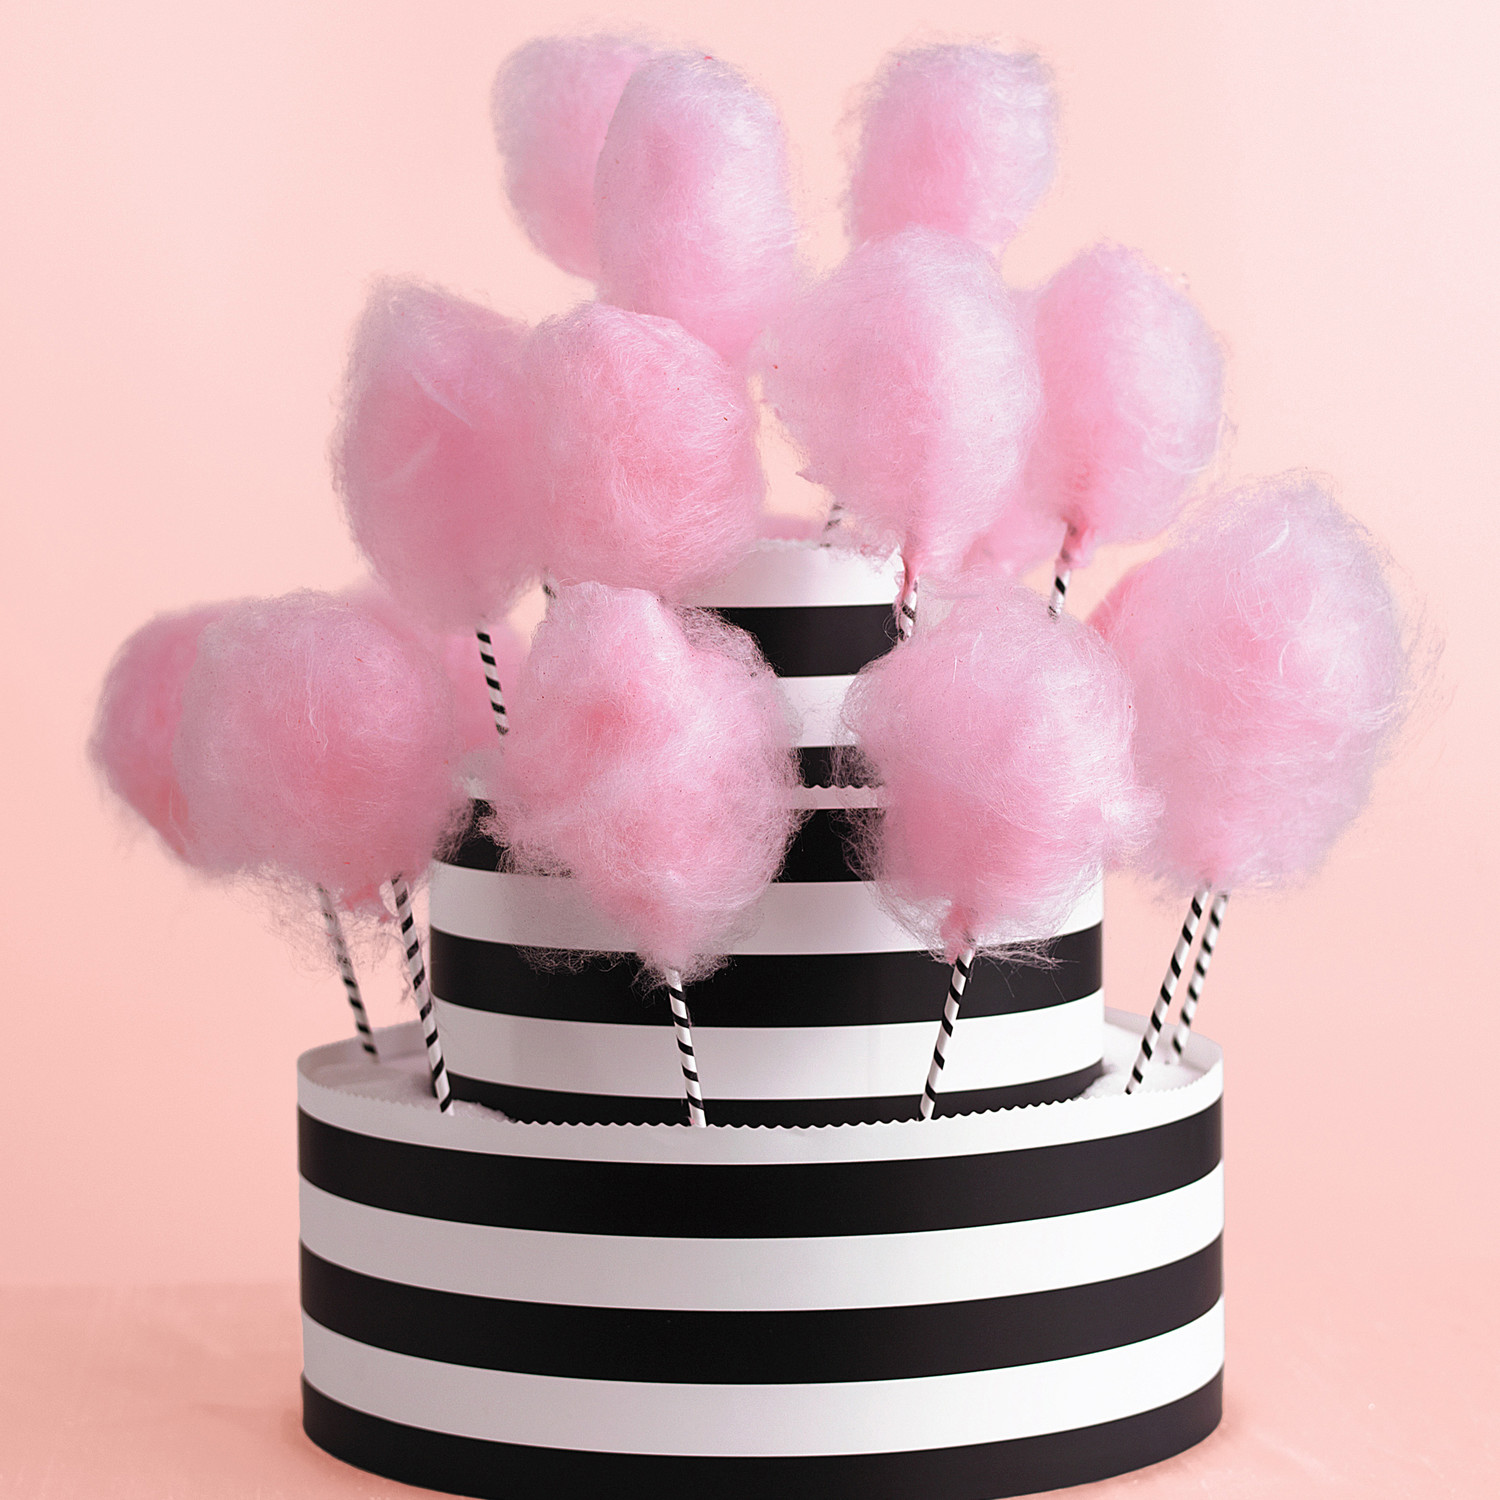 Creative Ways To Incorporate Black White And Pink Into Your Wedding Décor Martha Weddings